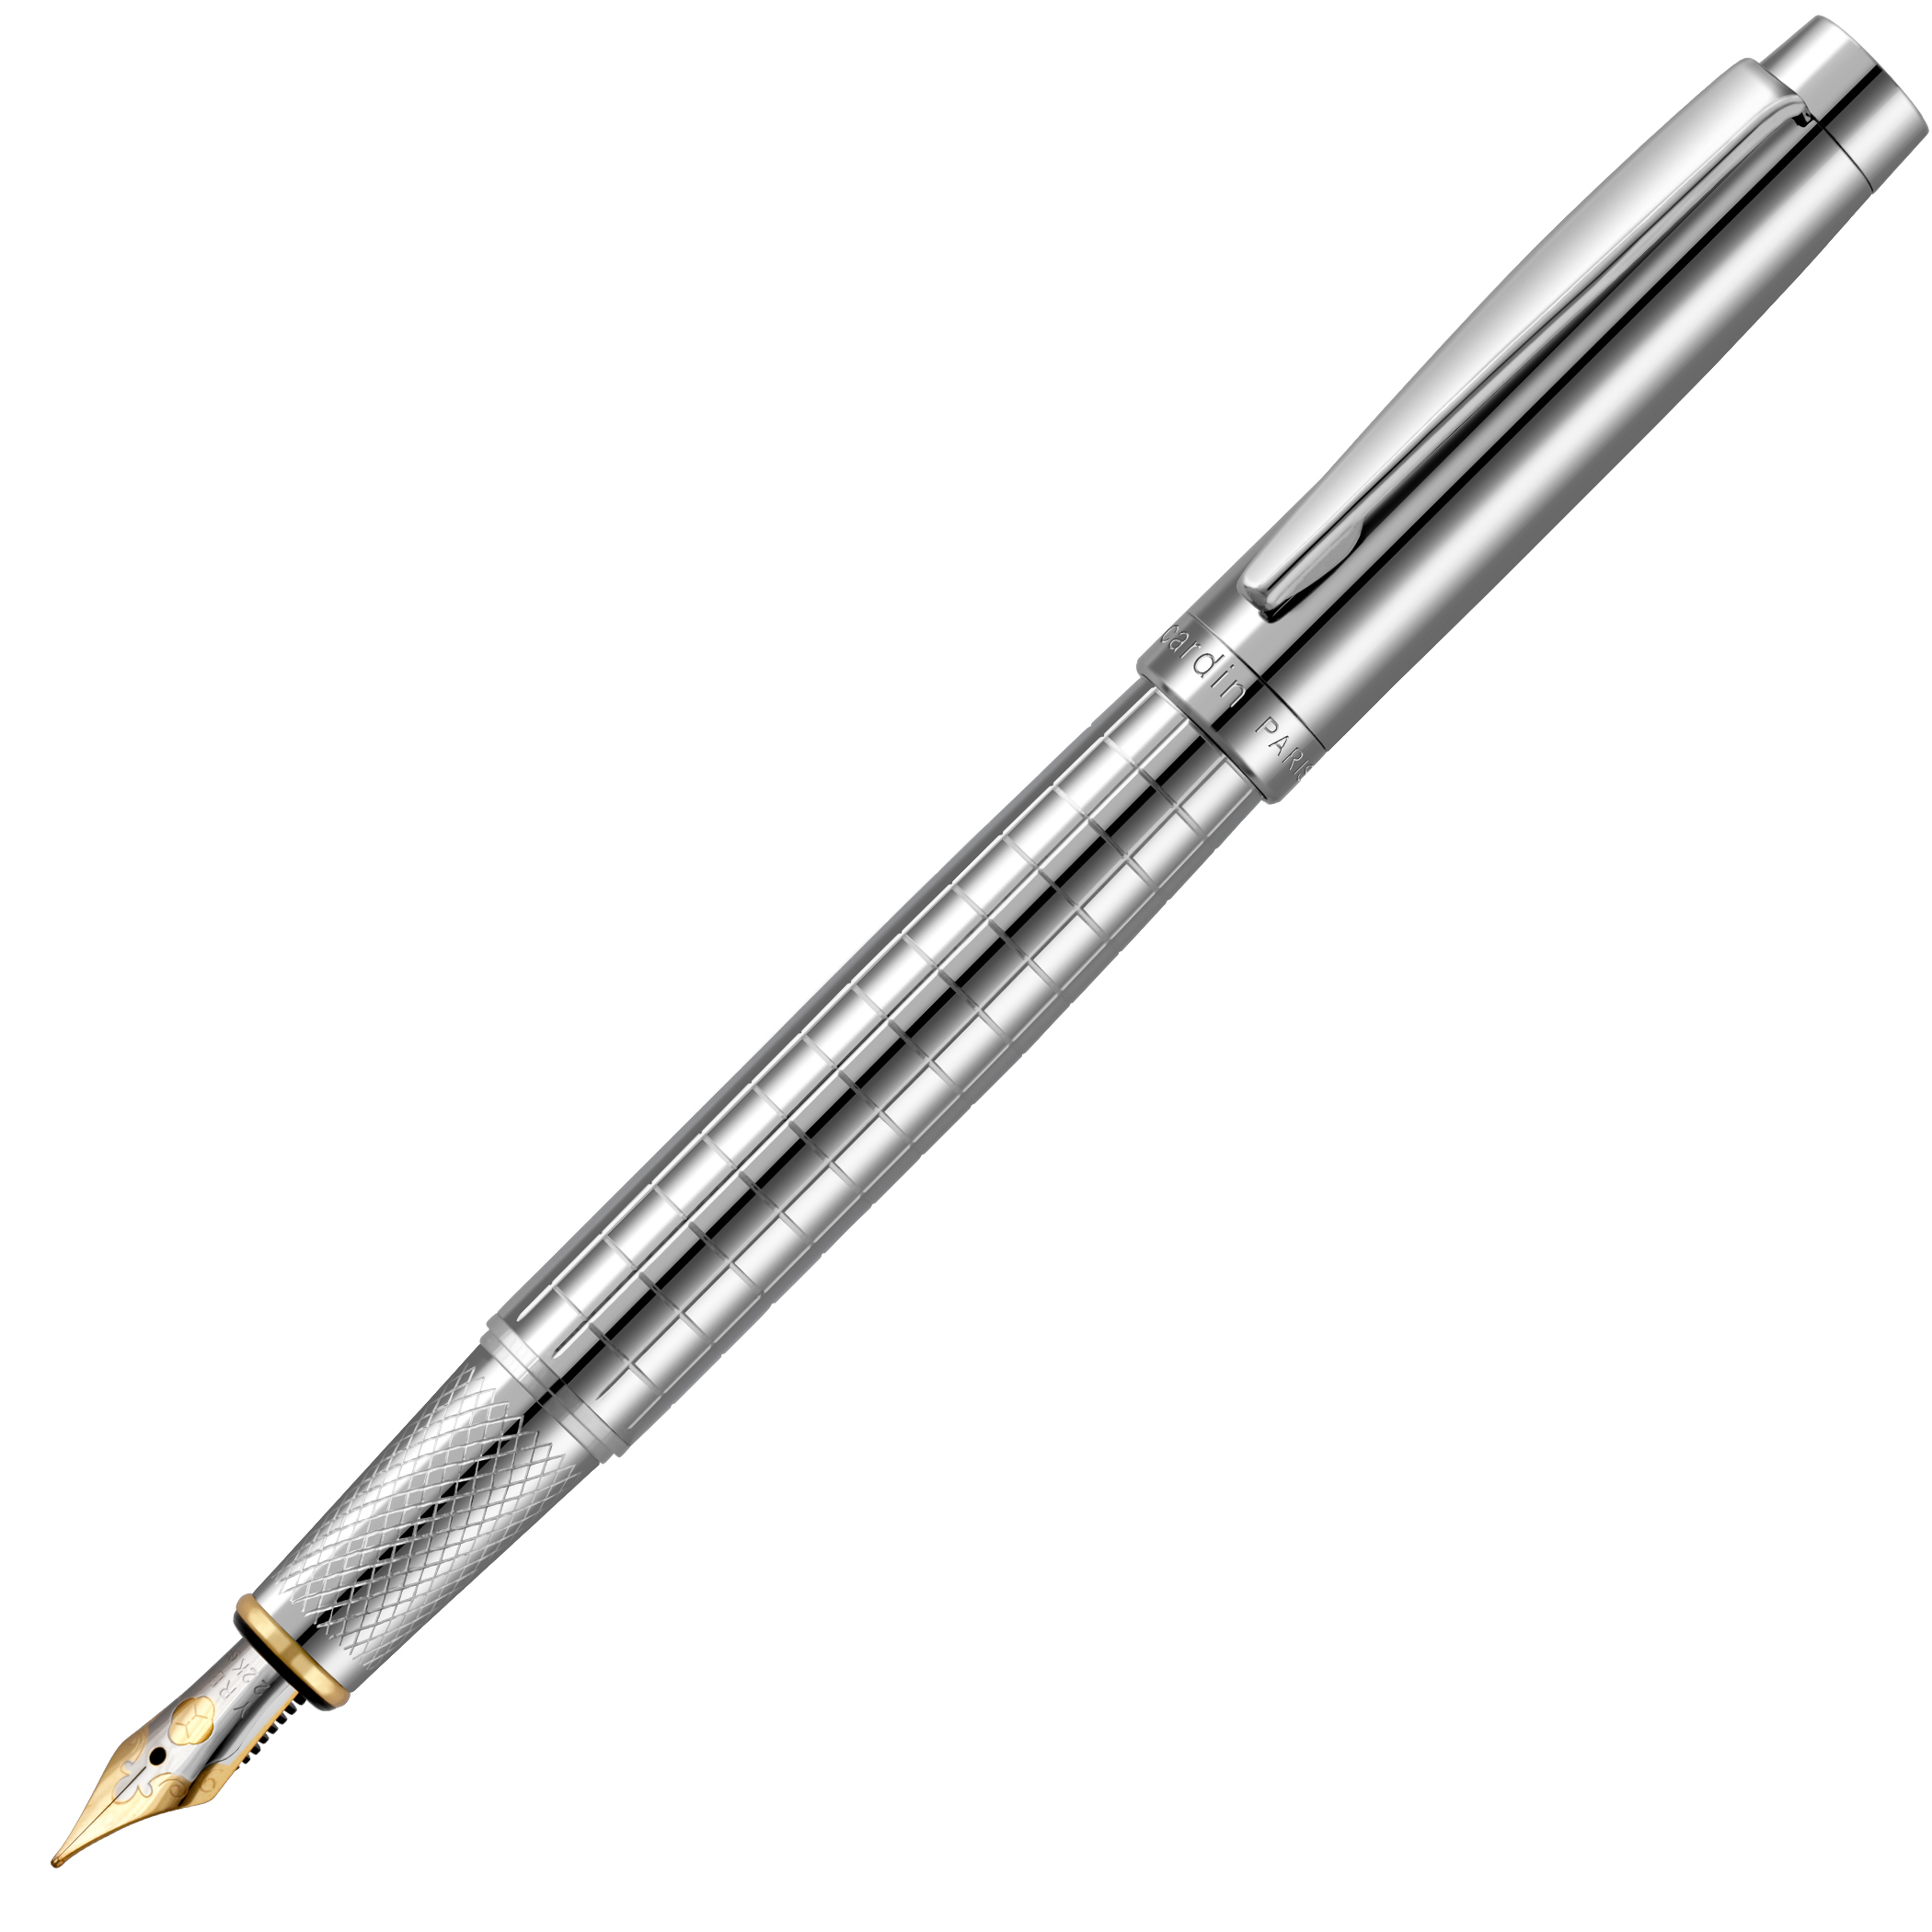 Tournier Fountain Pen by Pierre Cardin